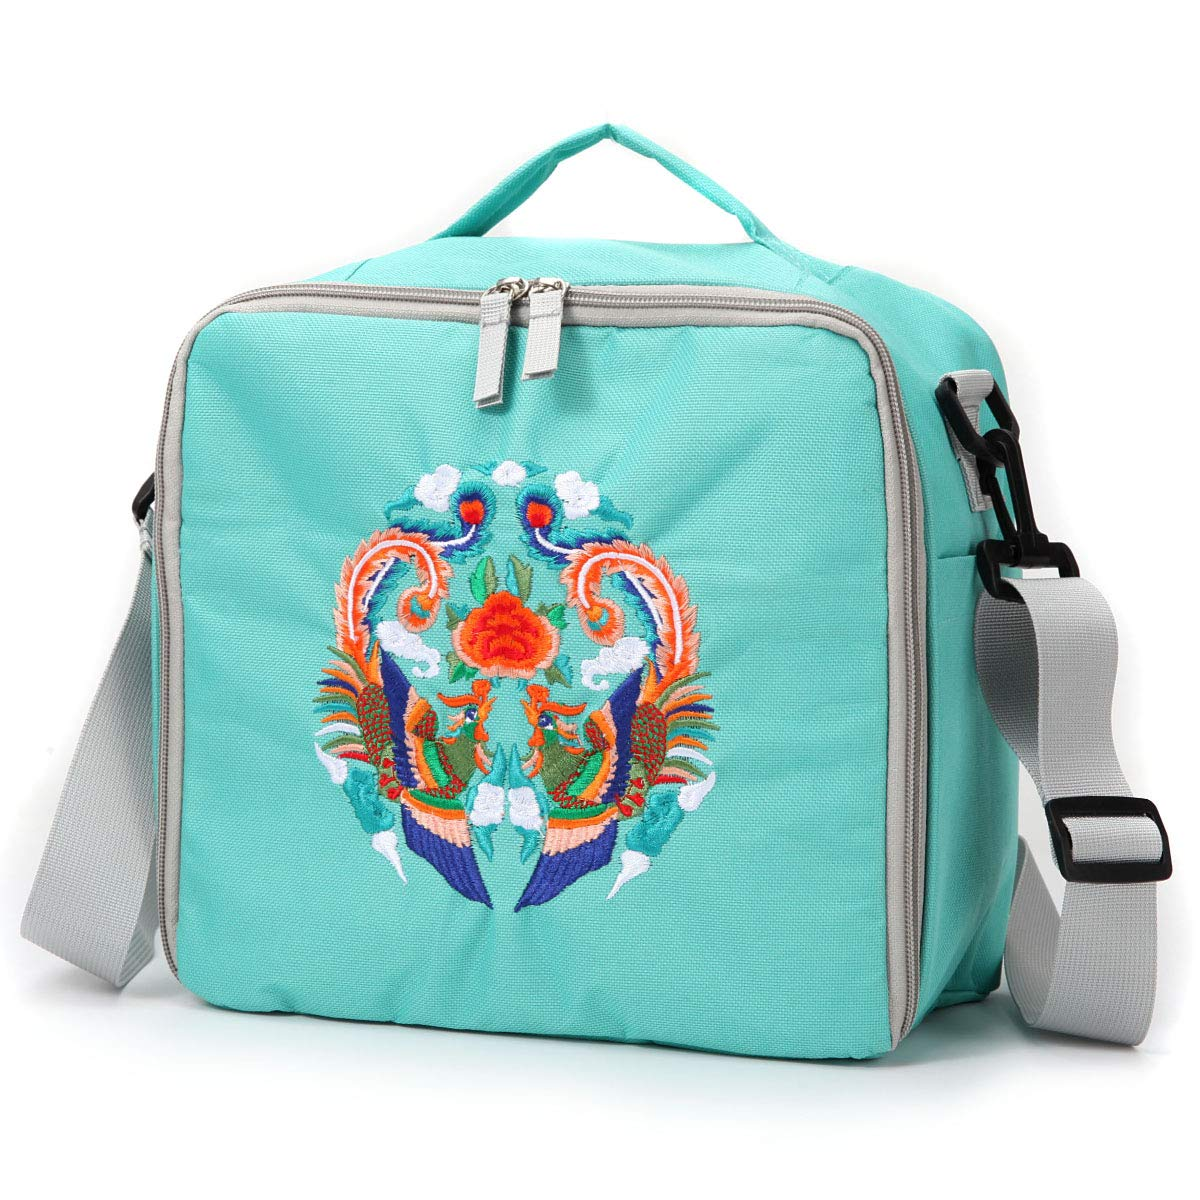 Embroidered Large Storage Tote Bag for Marker Pens Brush Pen Coloring Pencils Art and Crafts Supplies Tools Cosmetics (Green Phoenix Embroidery)